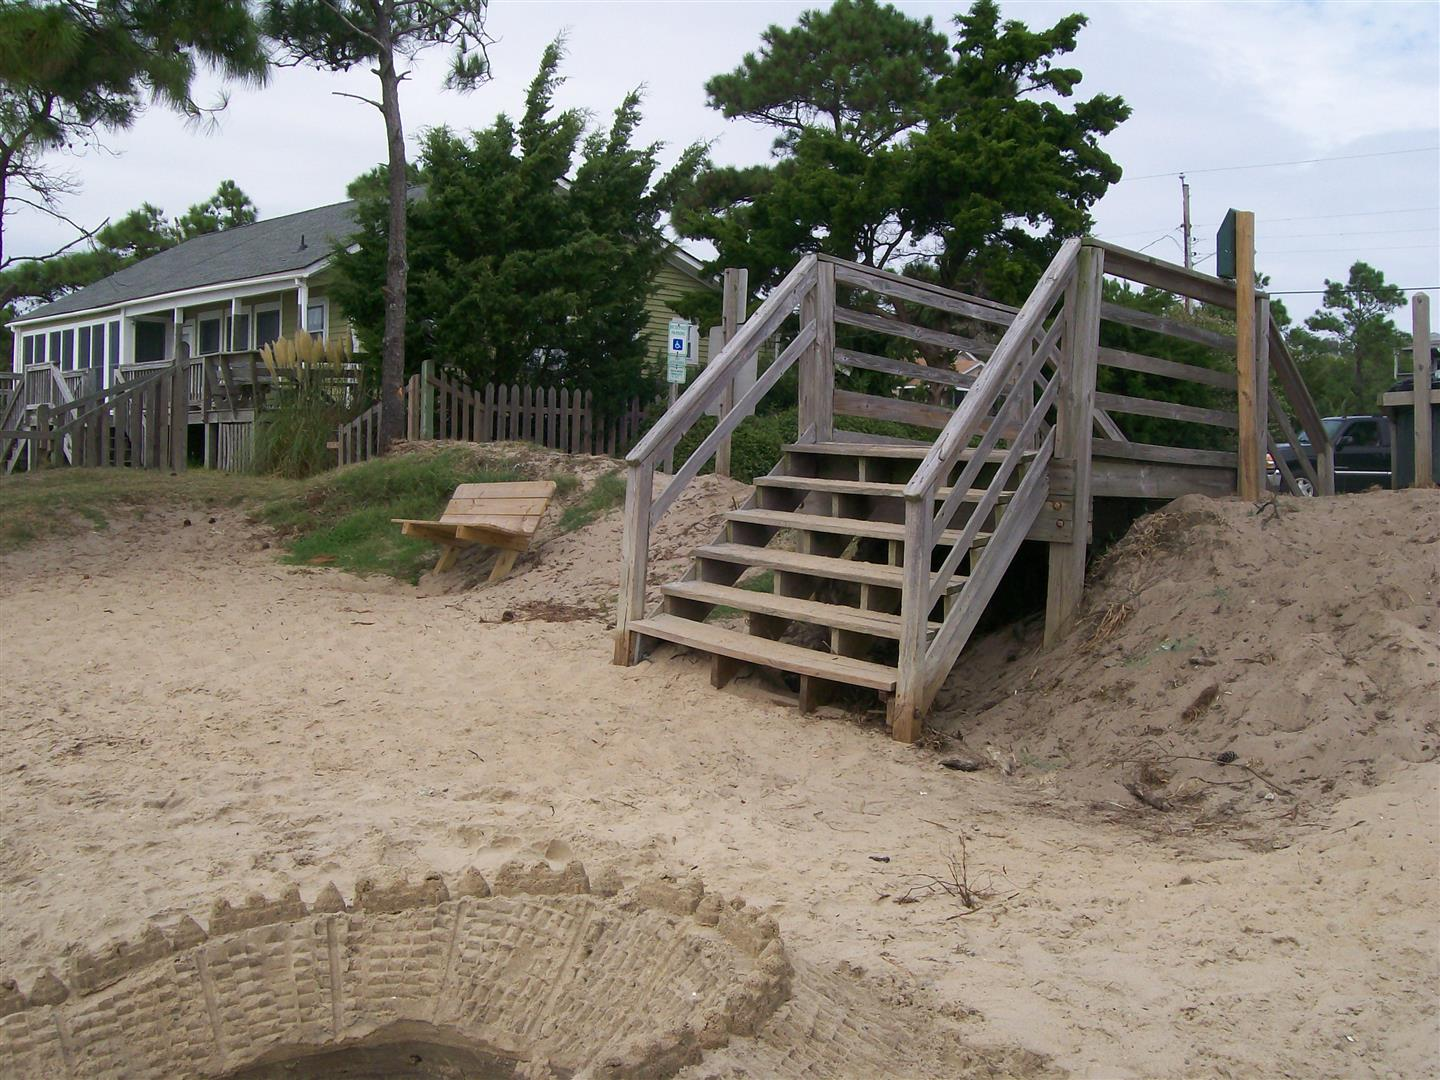 Wooden Stairs Leading to Beach With House in Background